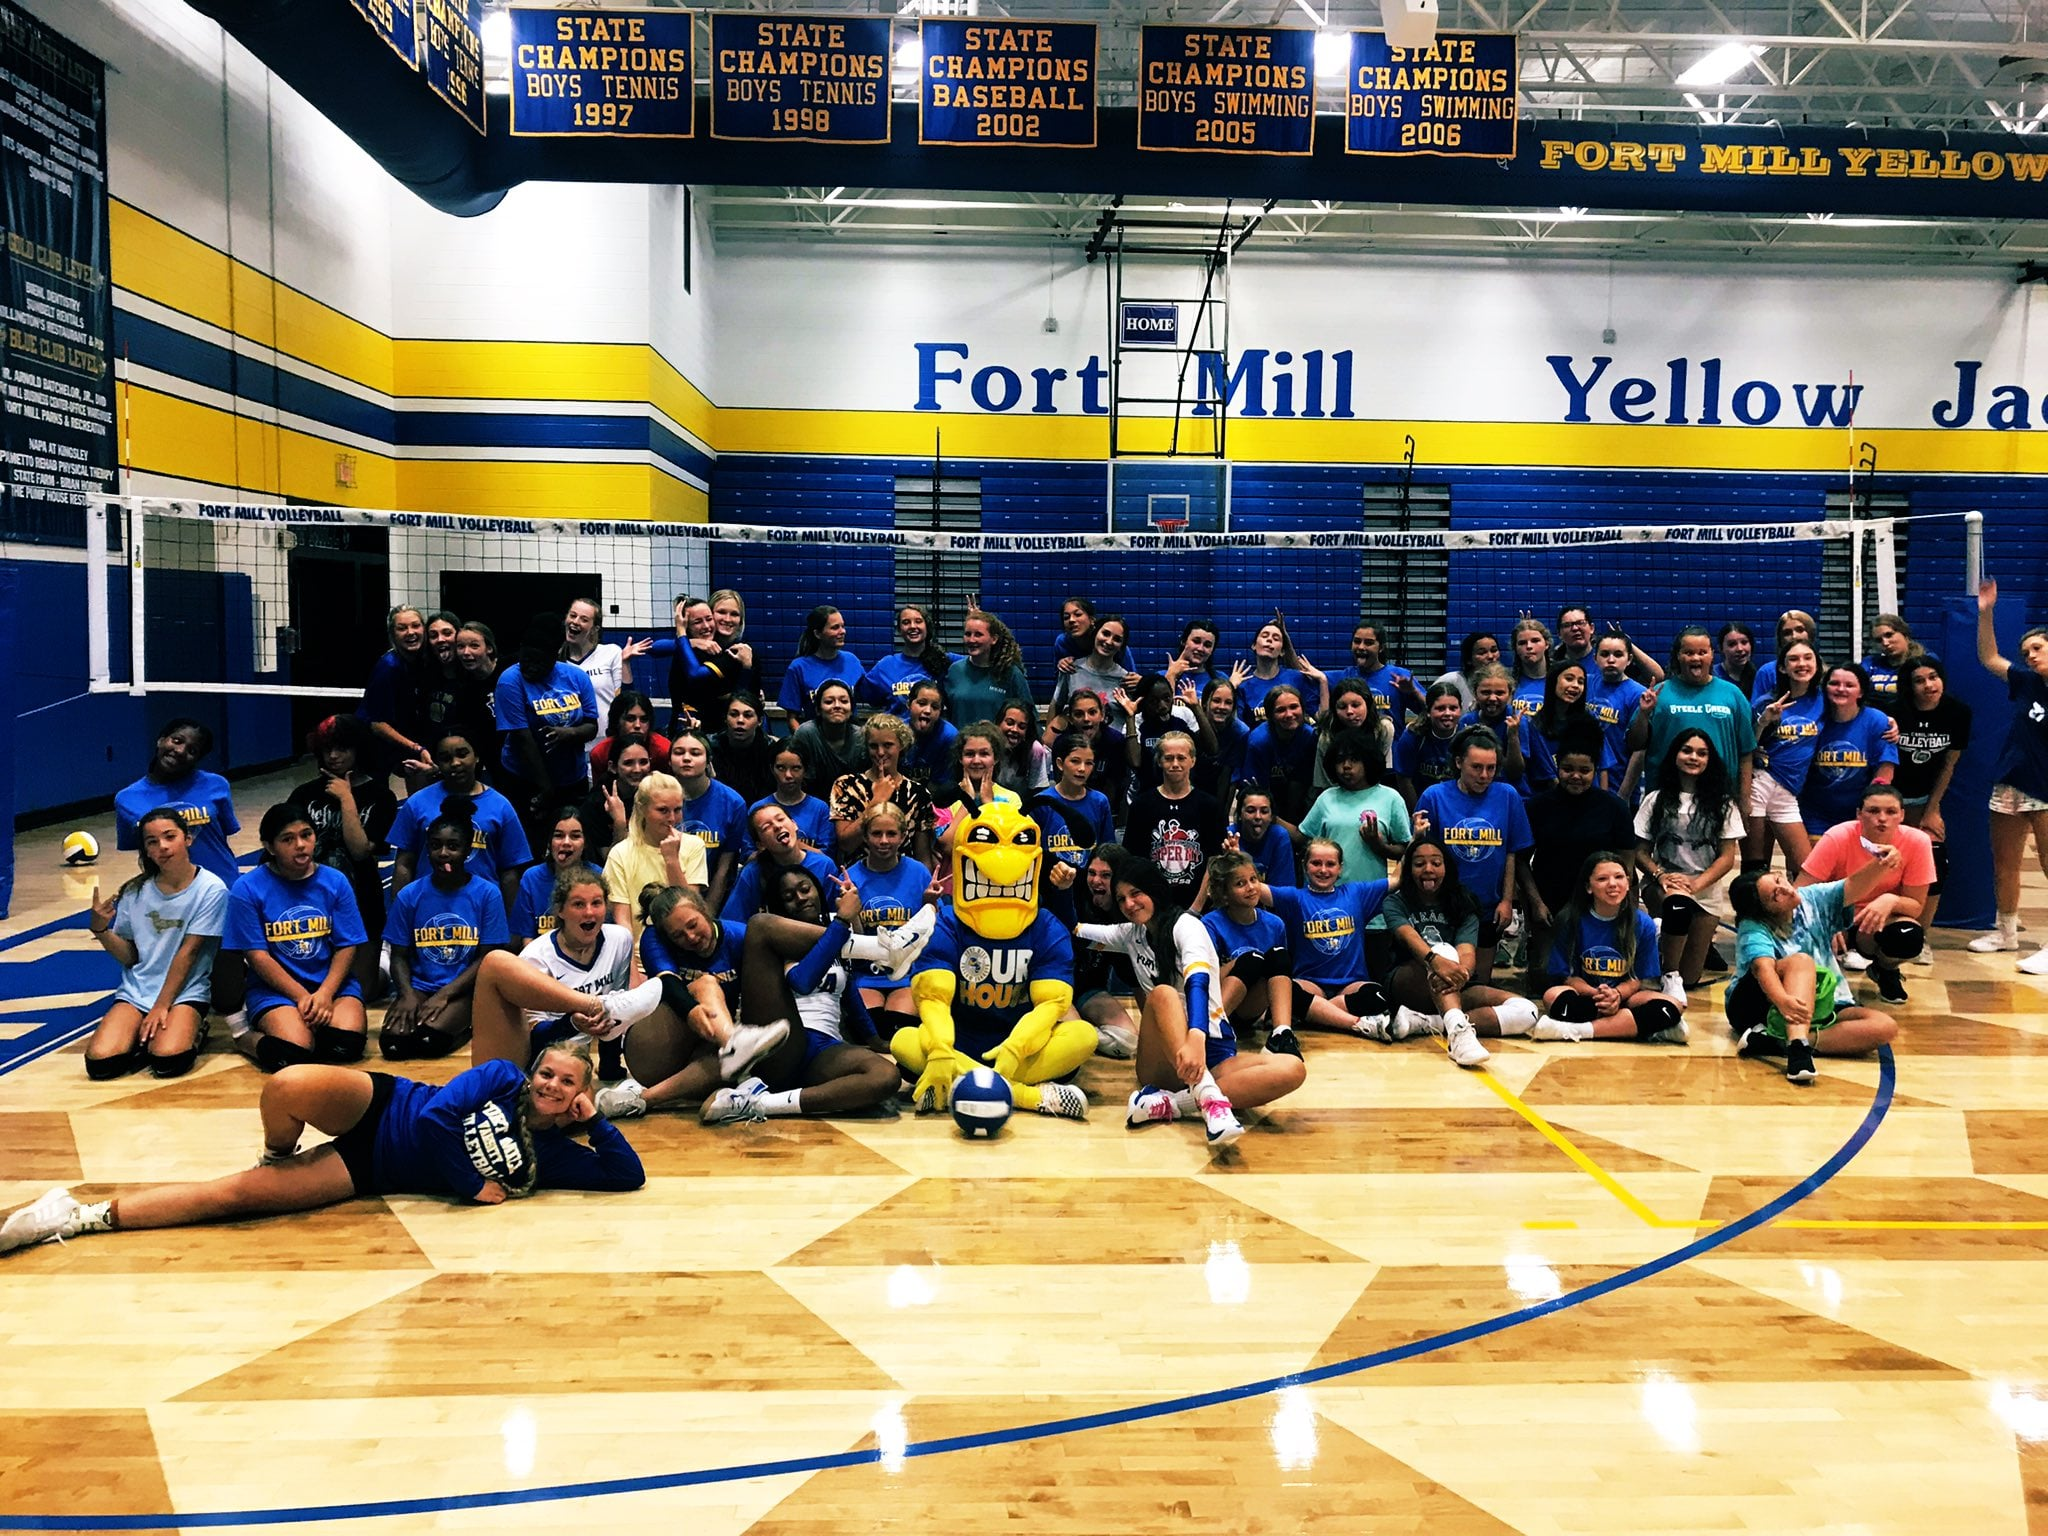 Fort Mill Yellowjackets Volleyball